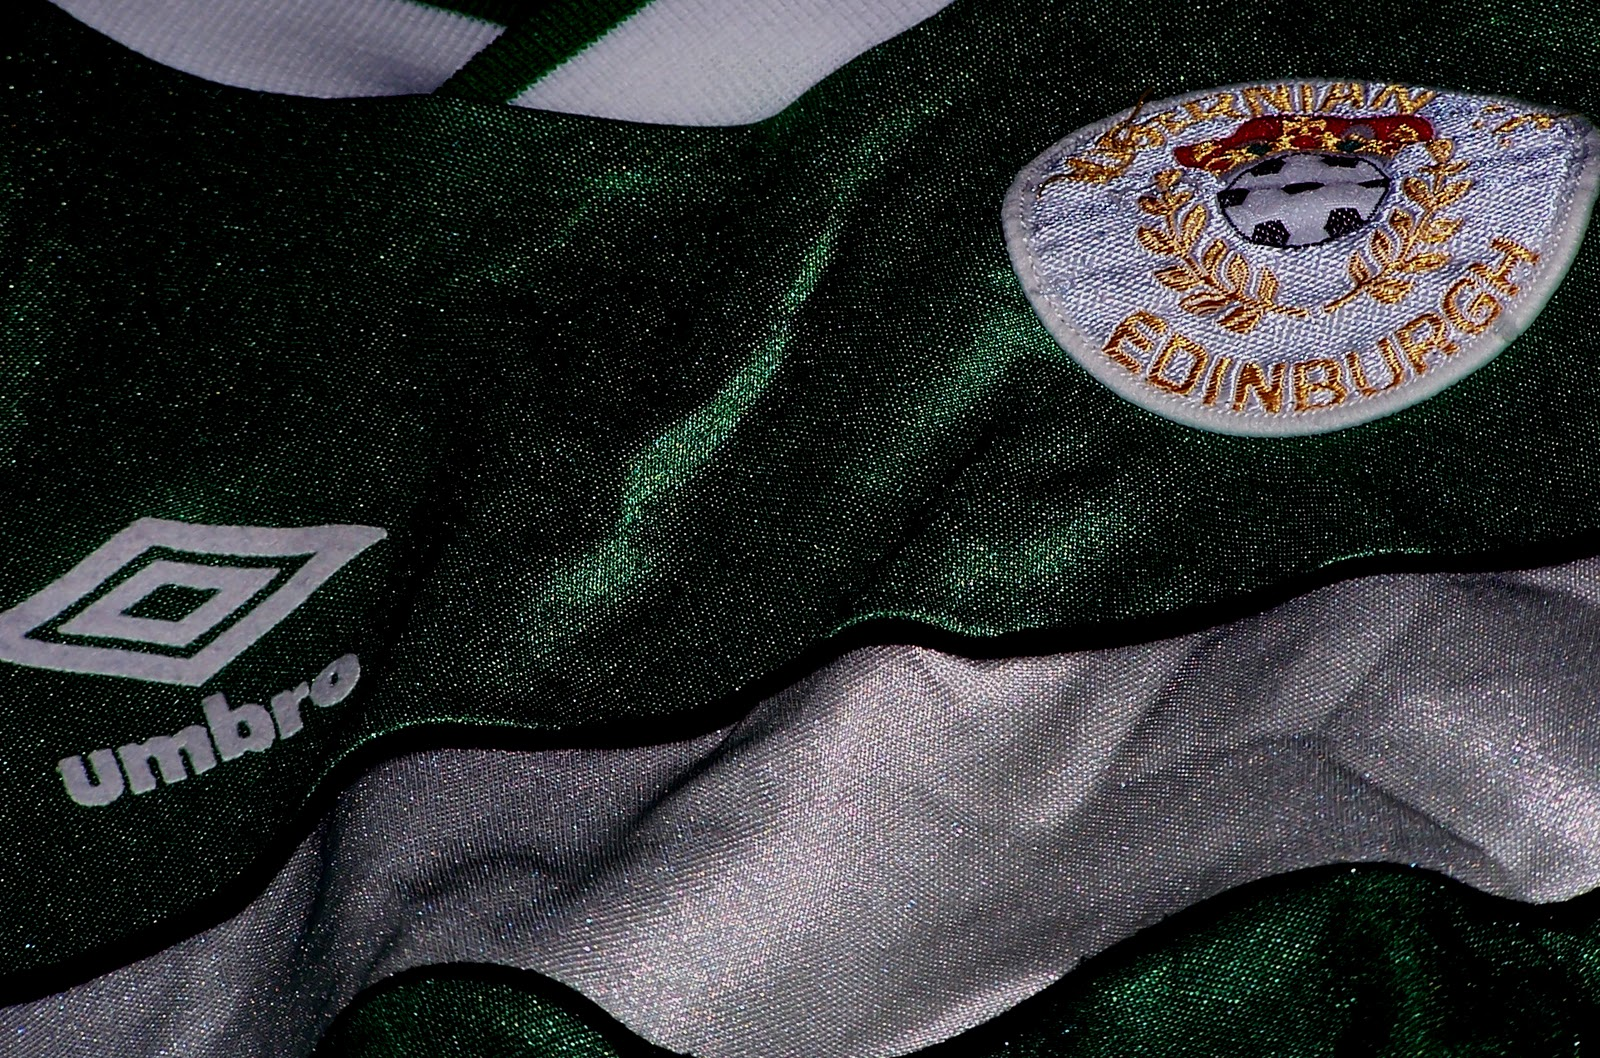 Hibs and Hearts meet at Easter Road, by Tom Hall at the Scottish Football Blog.